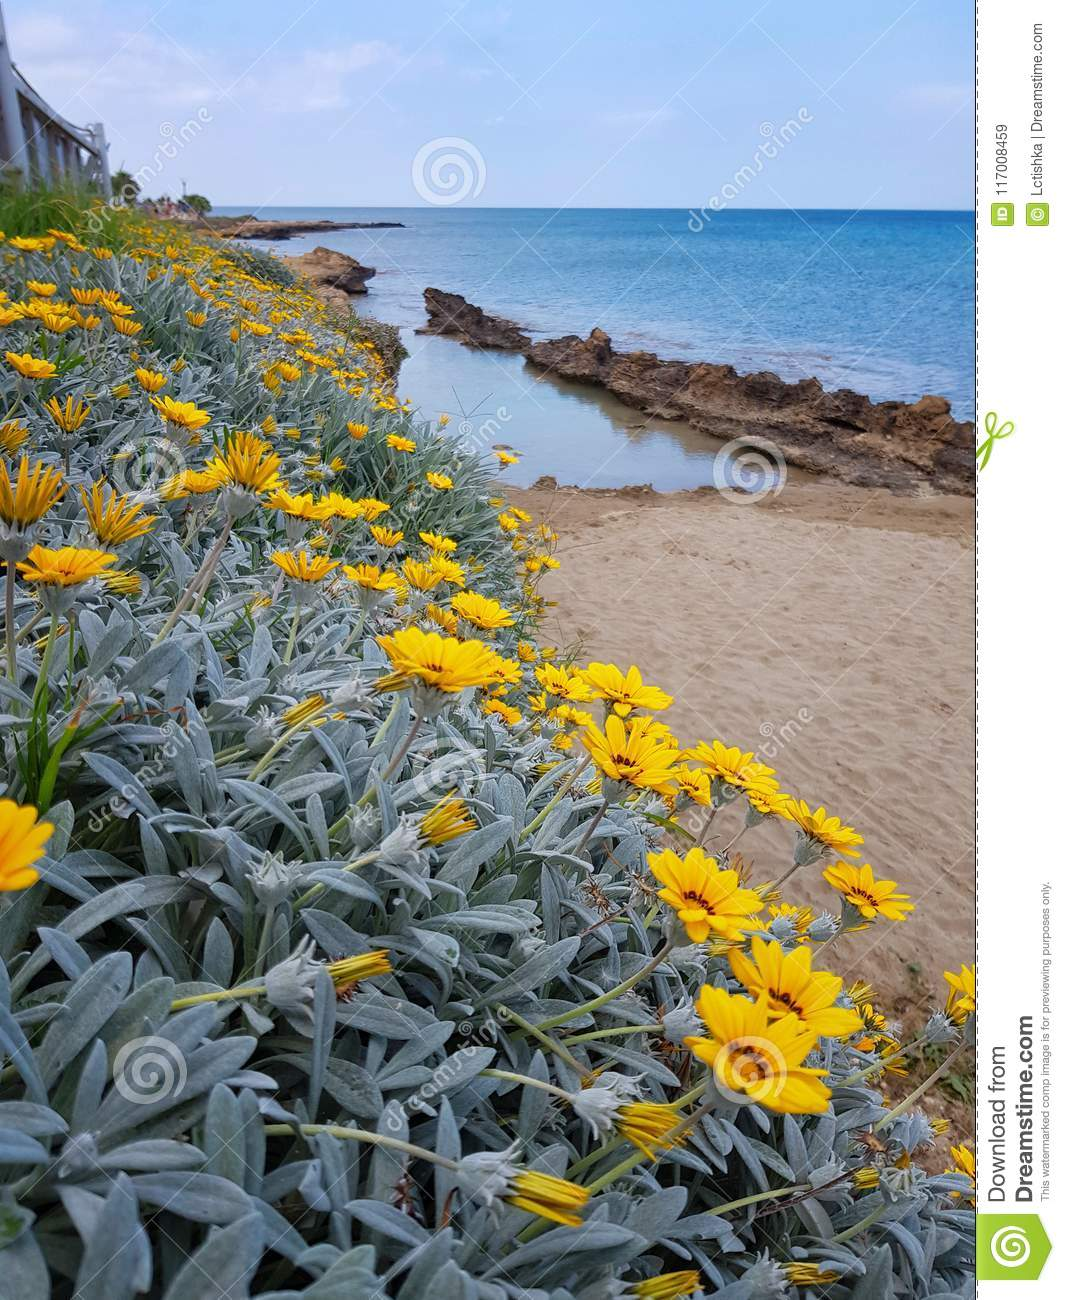 Yellow Flowers Grow On The Shores Of The Mediterranean Sea Stock